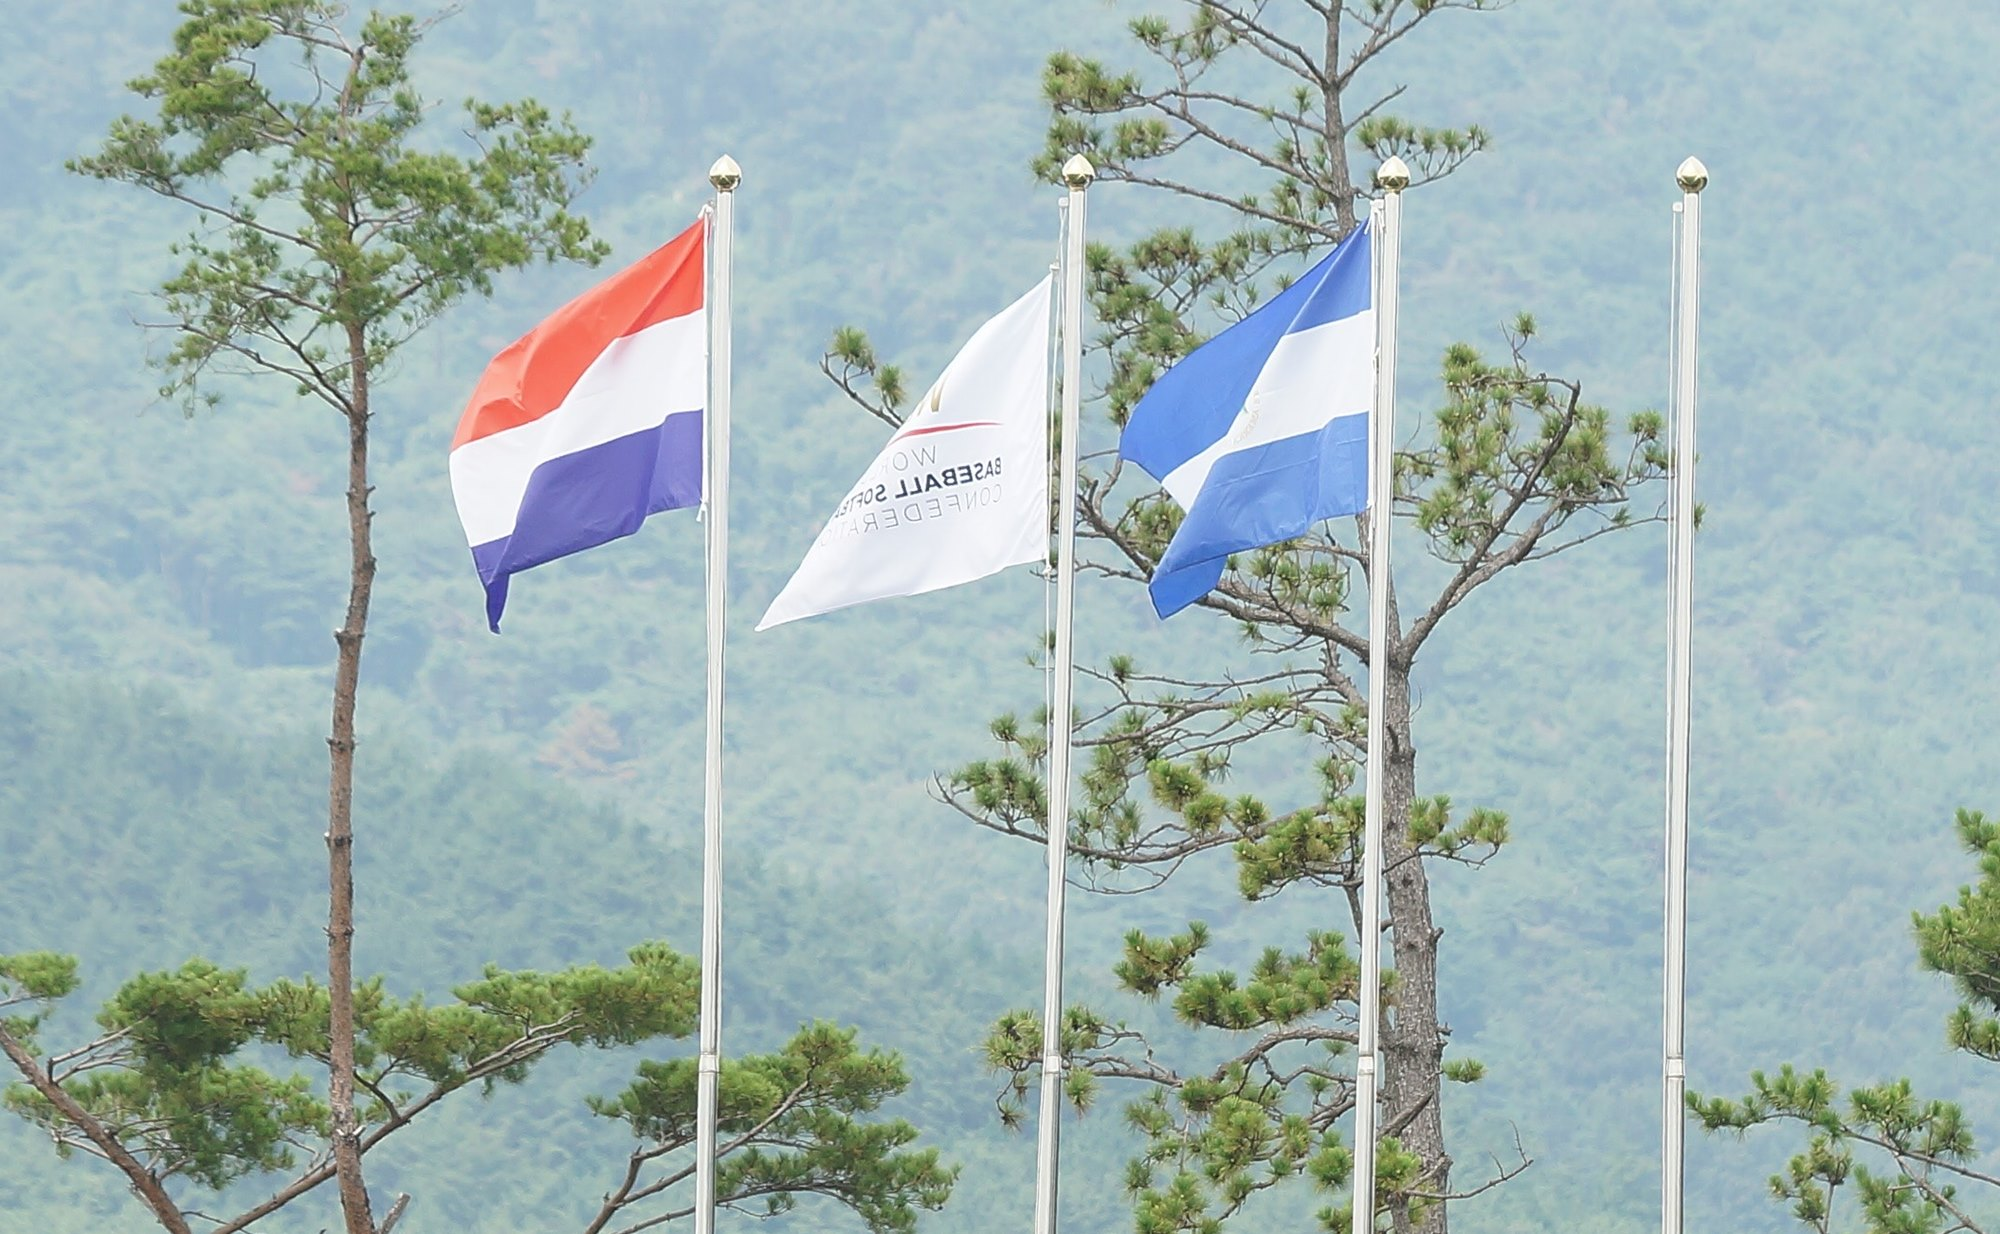 Netherlands and Nicaragua entered the game with different perspectives